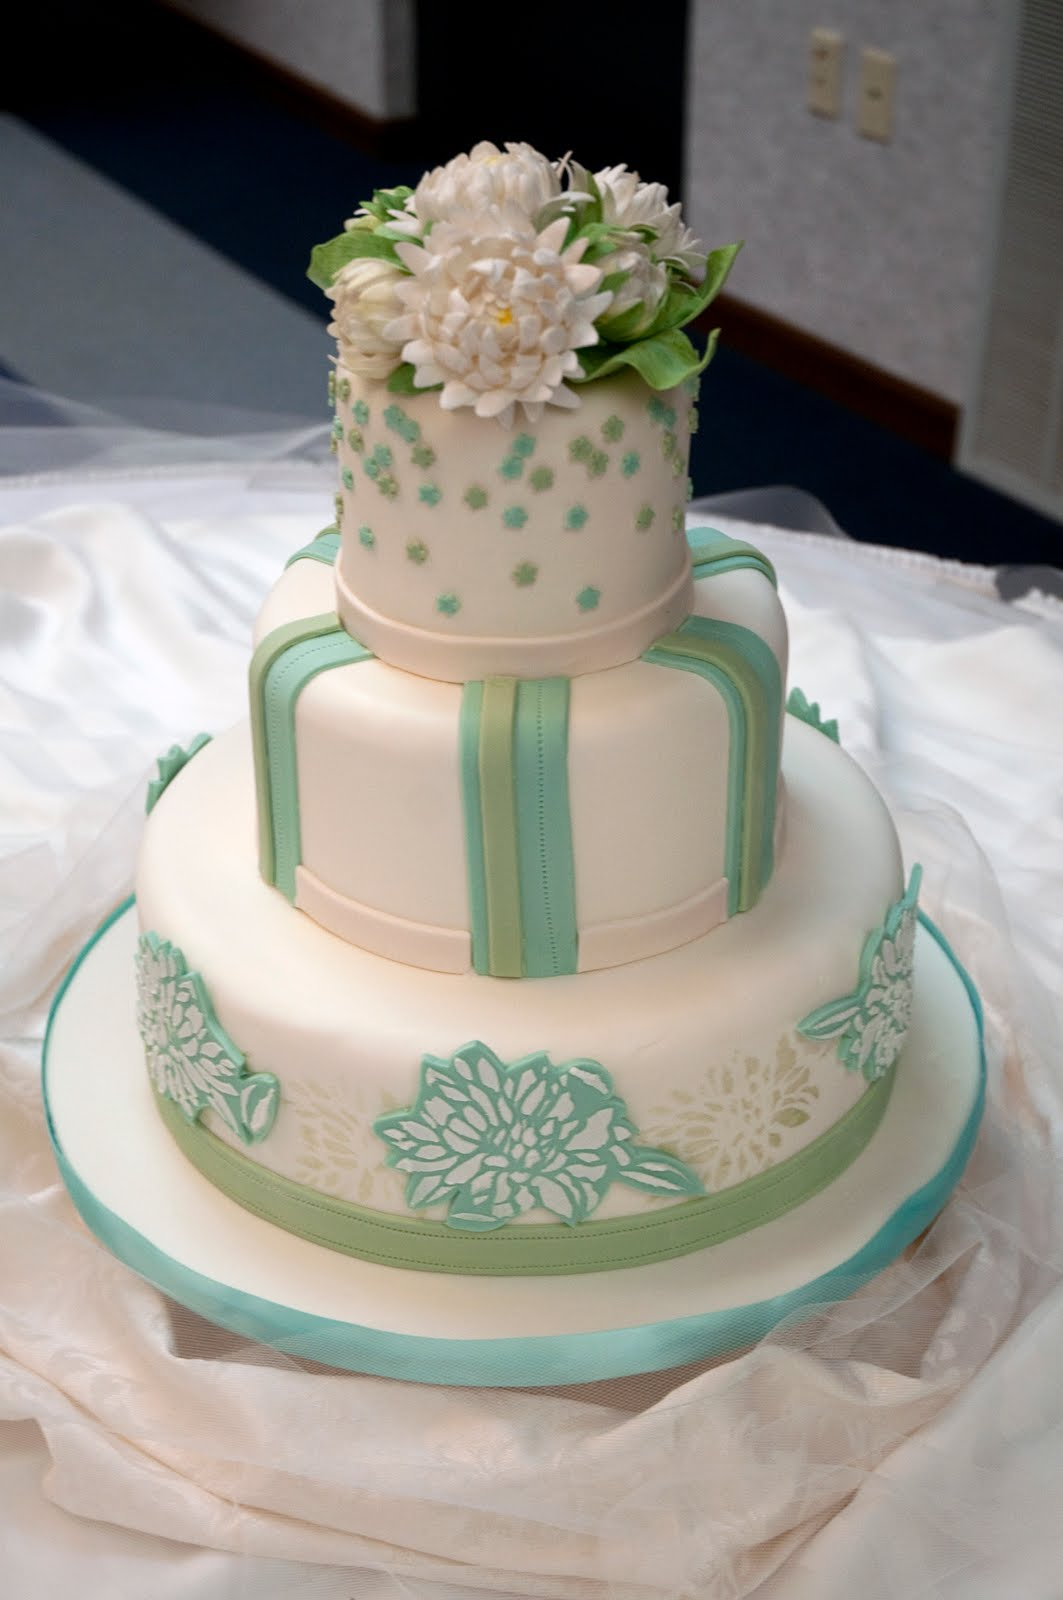 CETs Online Tool Kit CalJava Wedding Cake Competition Winners Announced